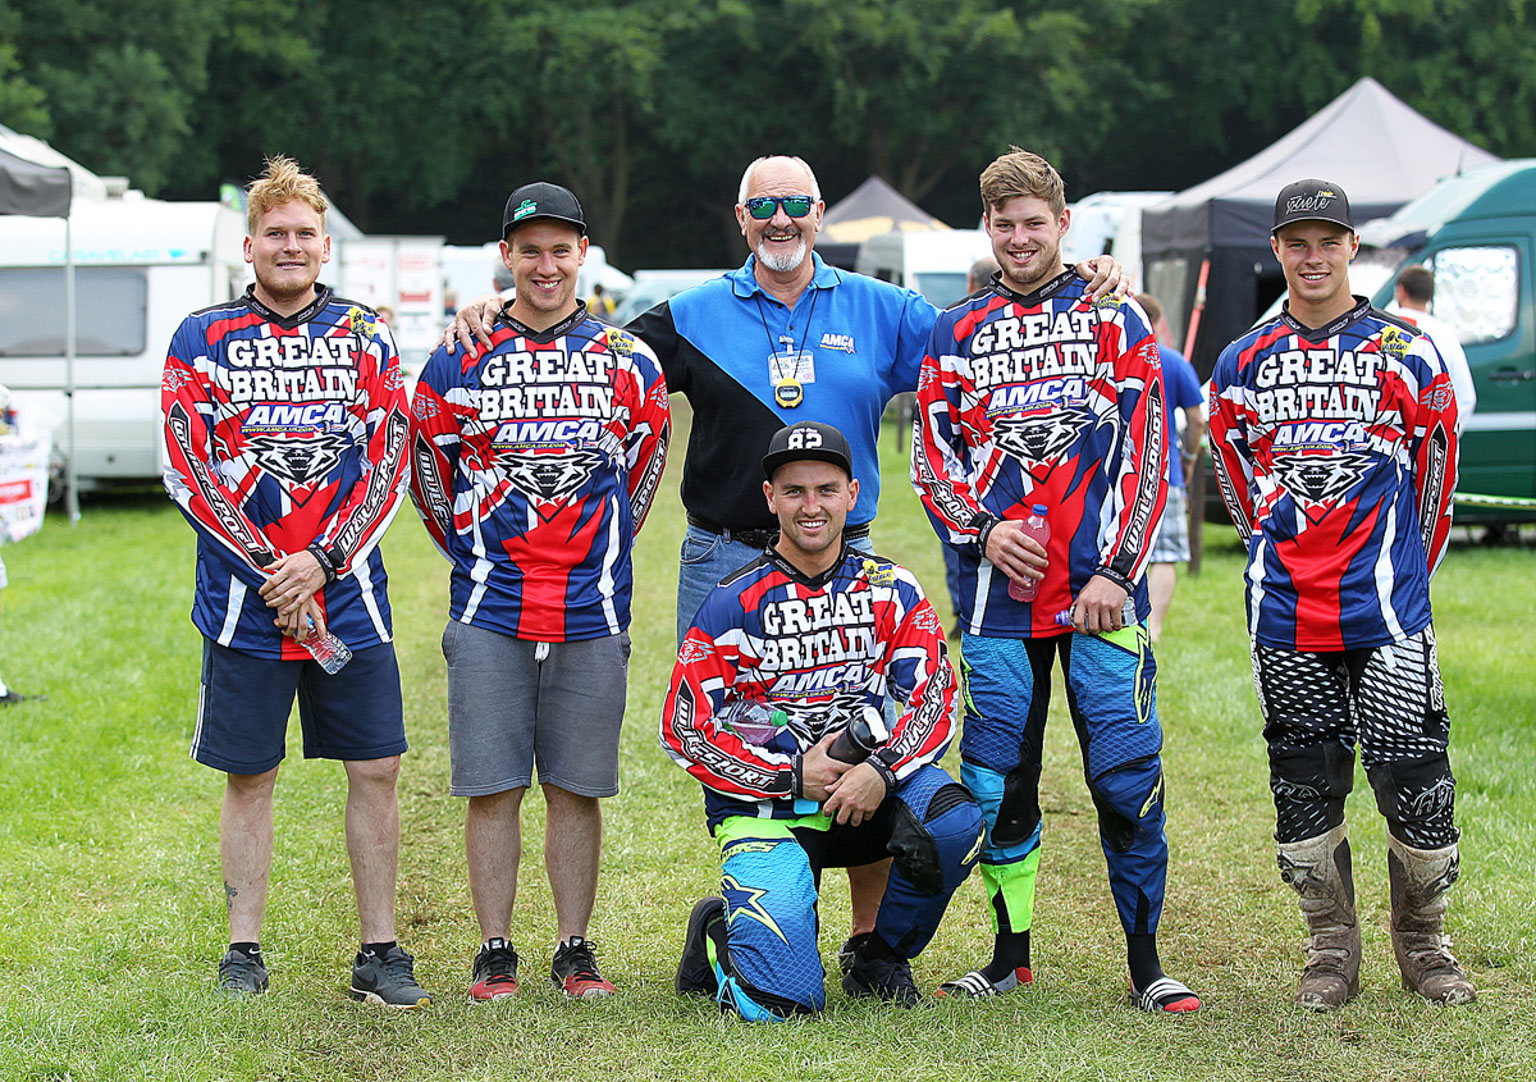 Team AMCA GB with left to right, Ray Rowson, Josh Waterman, Colin Price, Bradley Tranter, Jack Gardner and Jack Cox, kneeling